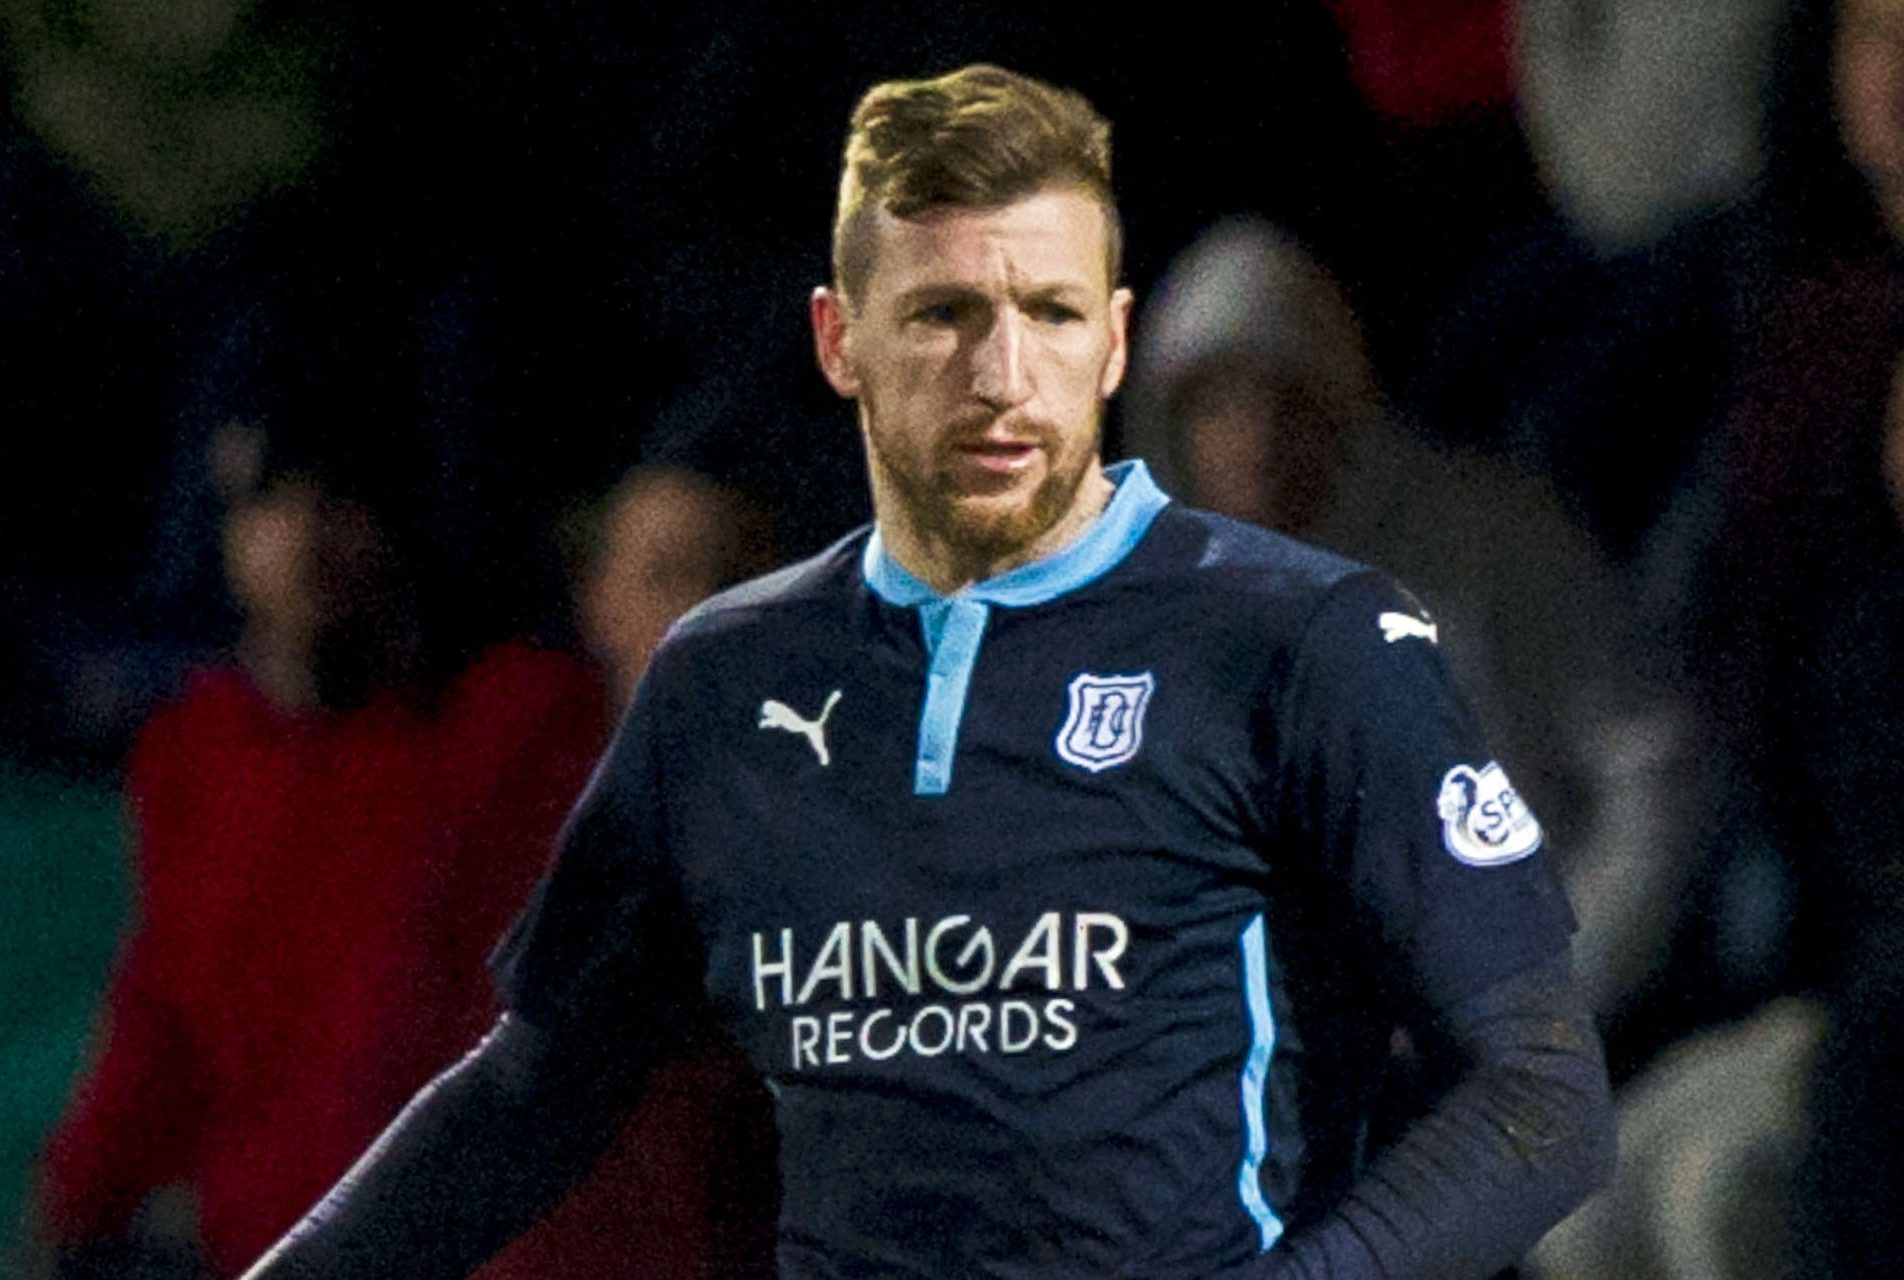 Iain Davidson in action for Dundee.